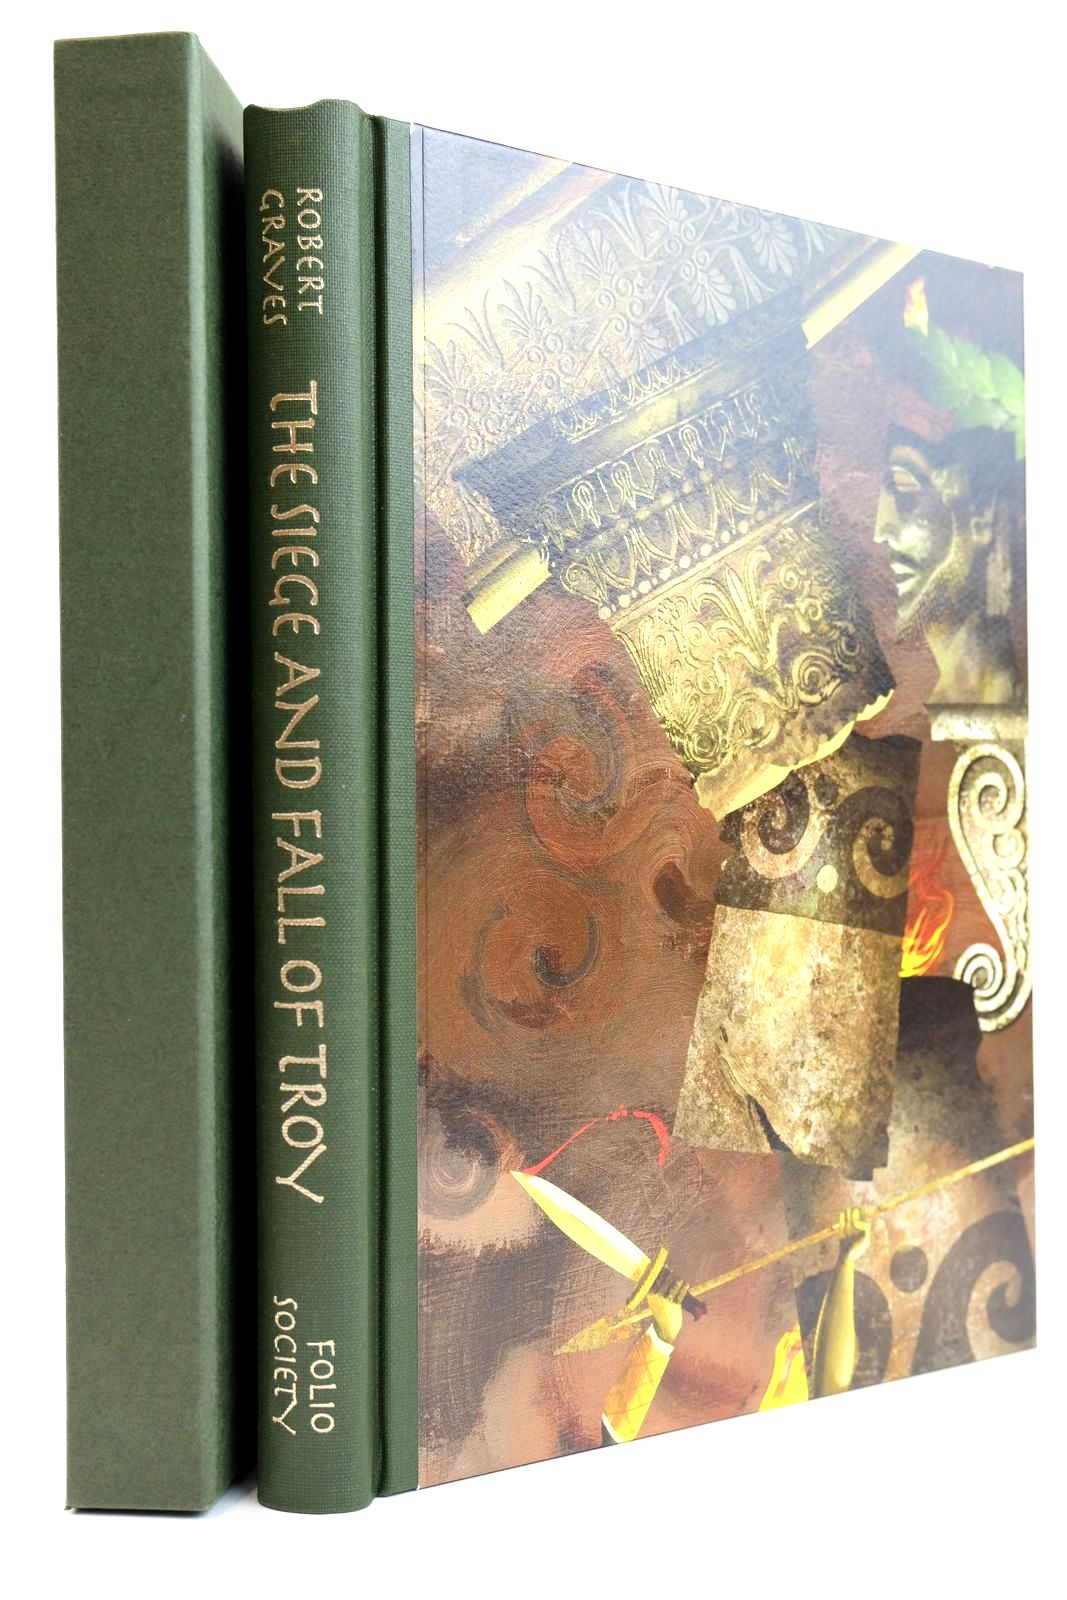 Photo of THE SIEGE AND FALL OF TROY written by Graves, Robert illustrated by Baker, Grahame published by Folio Society (STOCK CODE: 2132166)  for sale by Stella & Rose's Books